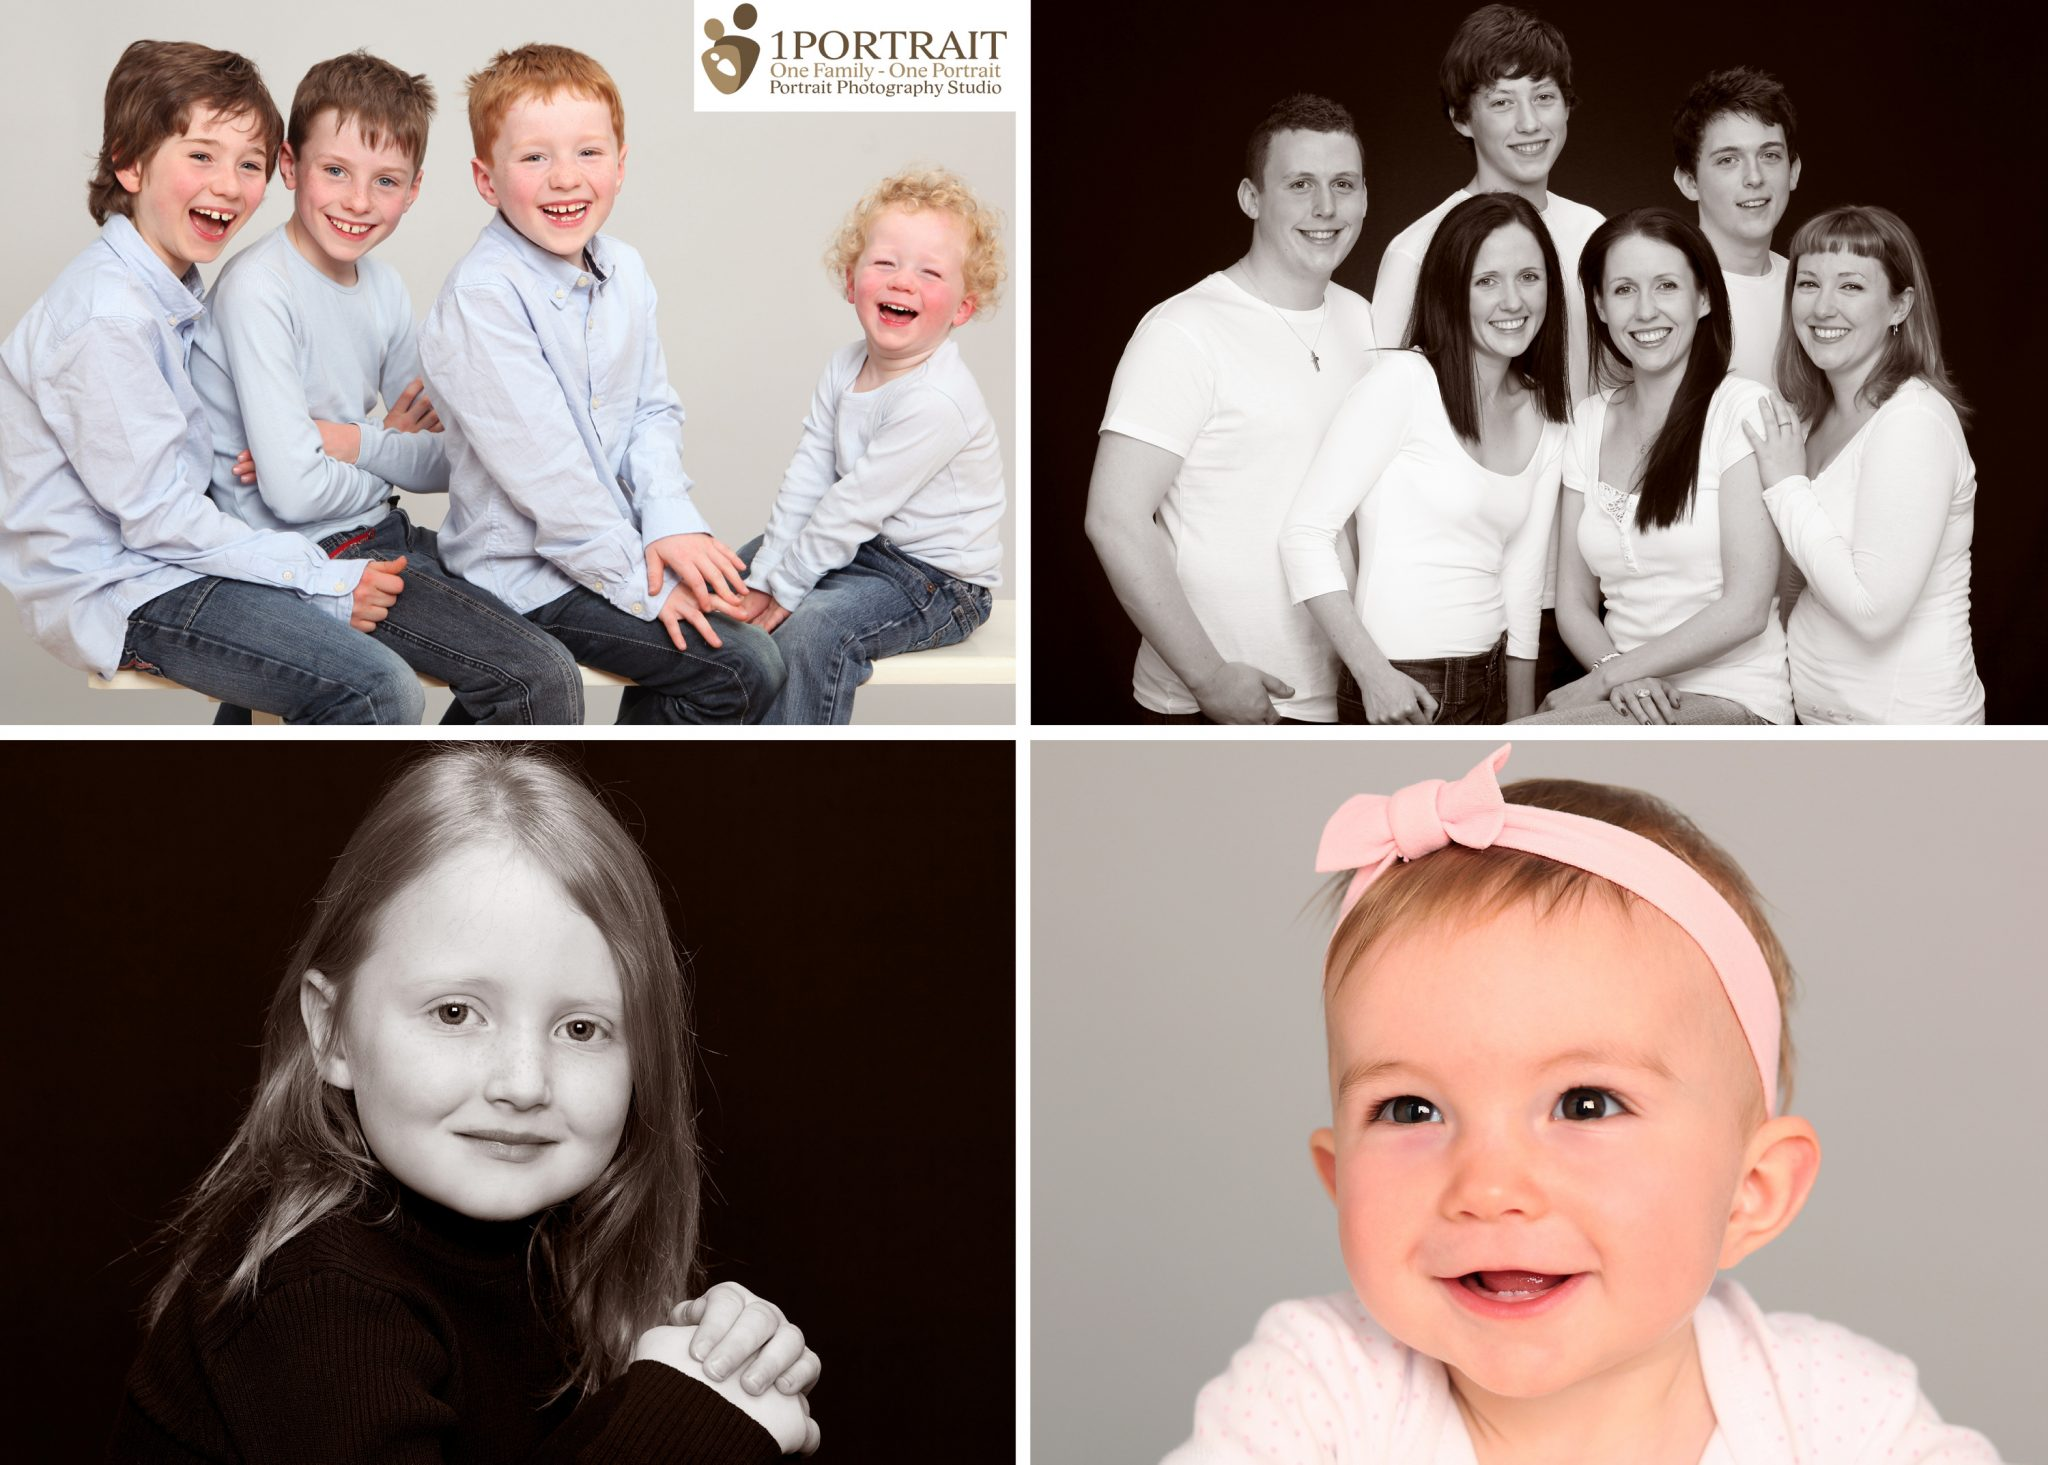 Collage of family portraits. 1PORTRAIT Family Photo Dublin www.1portrait.ie Mother's Day Gift Photo